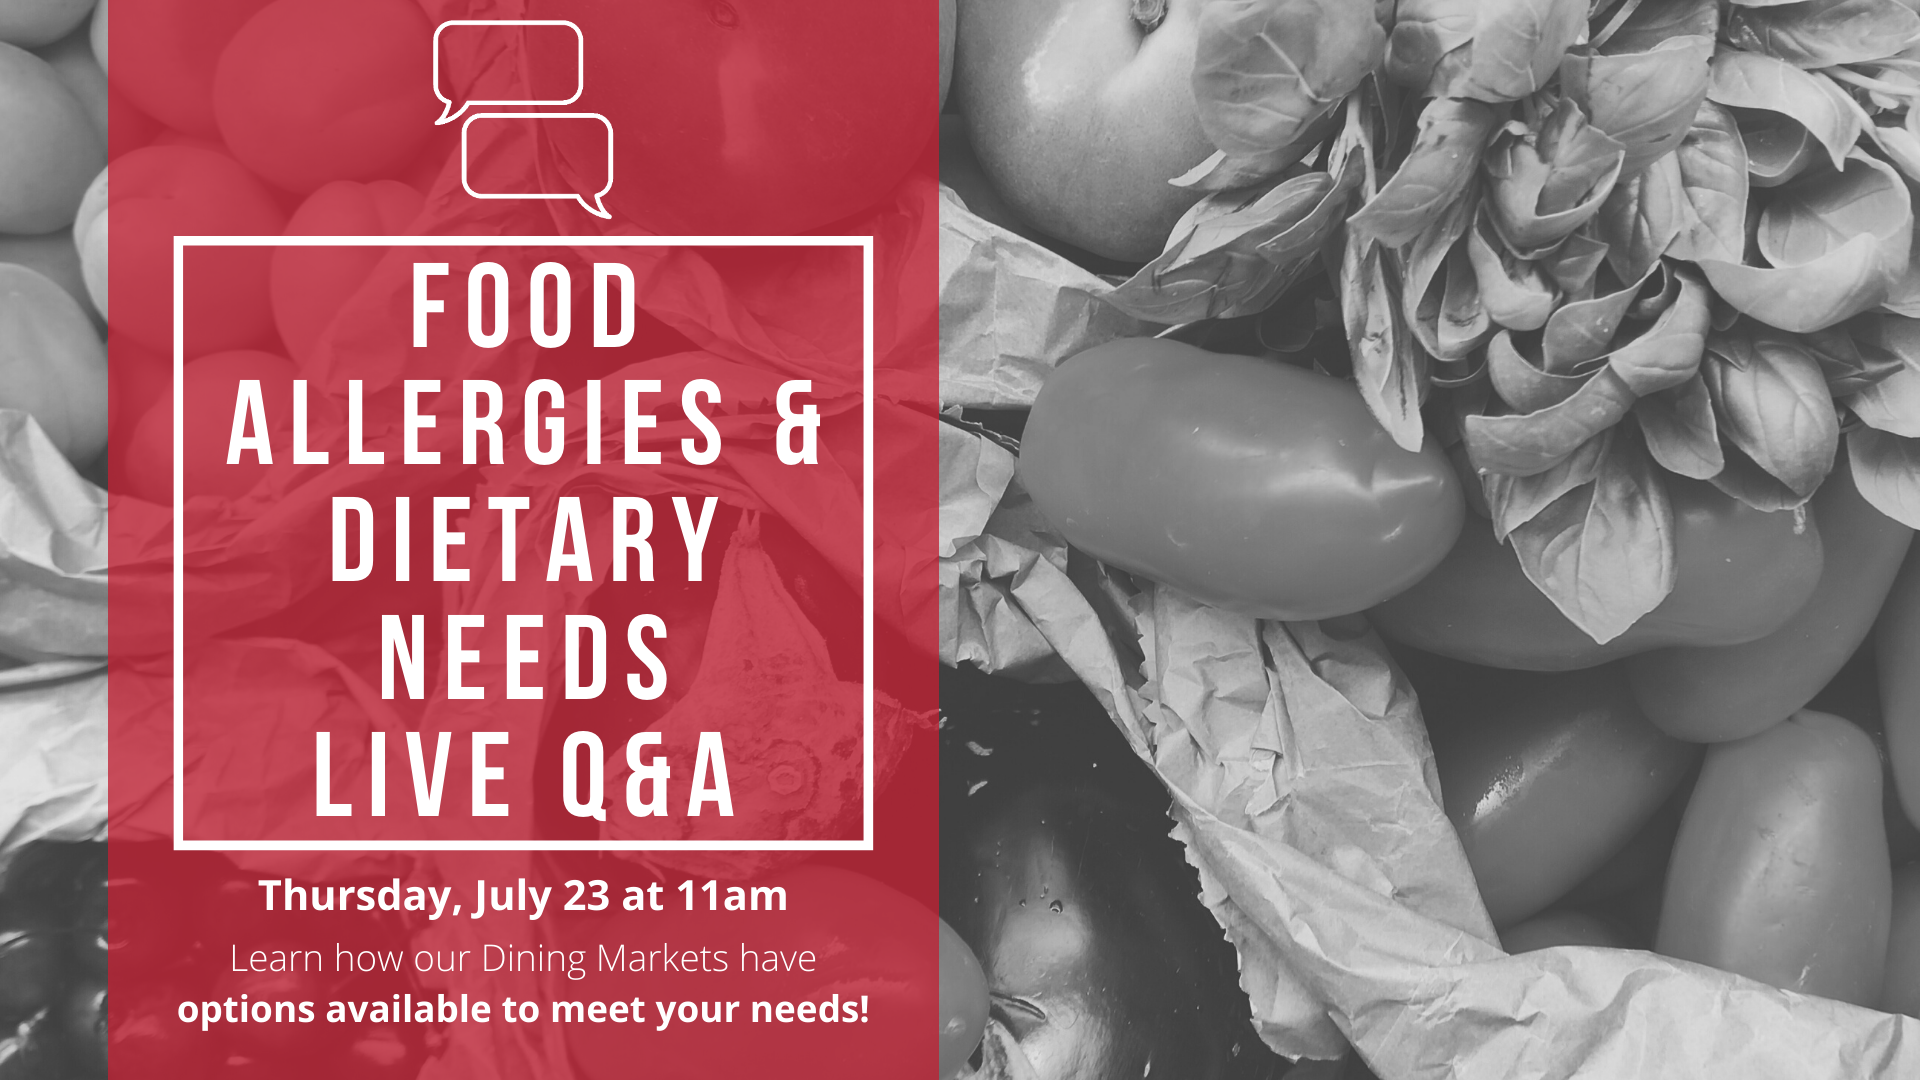 Food Allergies & Dietary Needs Live Q & A, 7/23 at 11am CDT